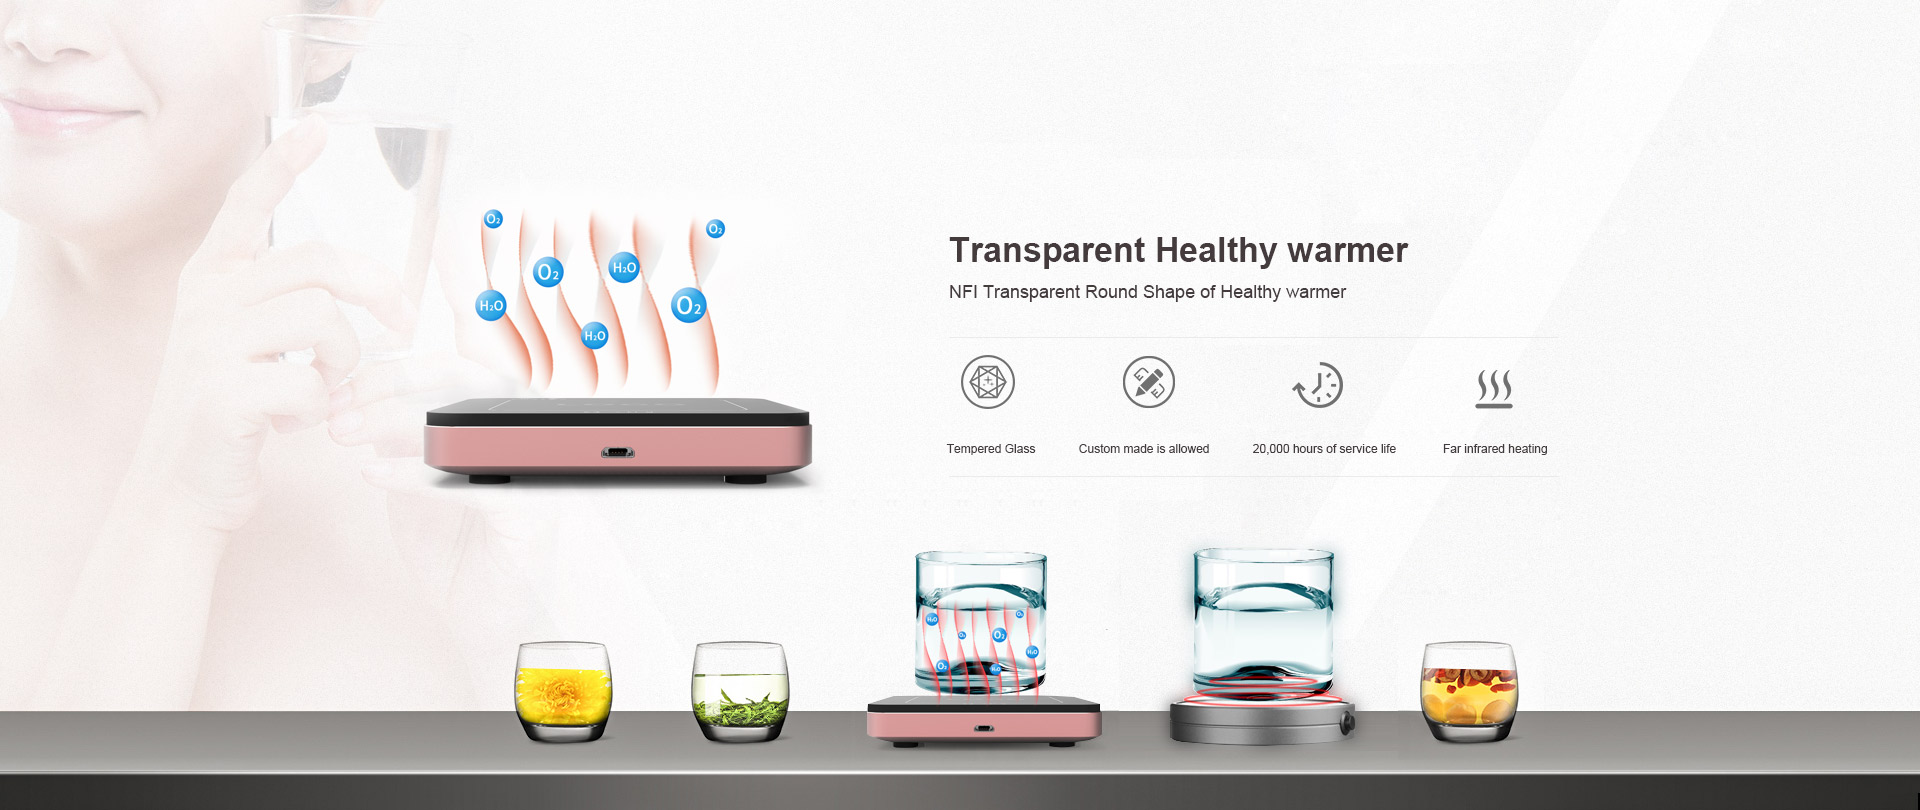 Transparent Healthy warmer